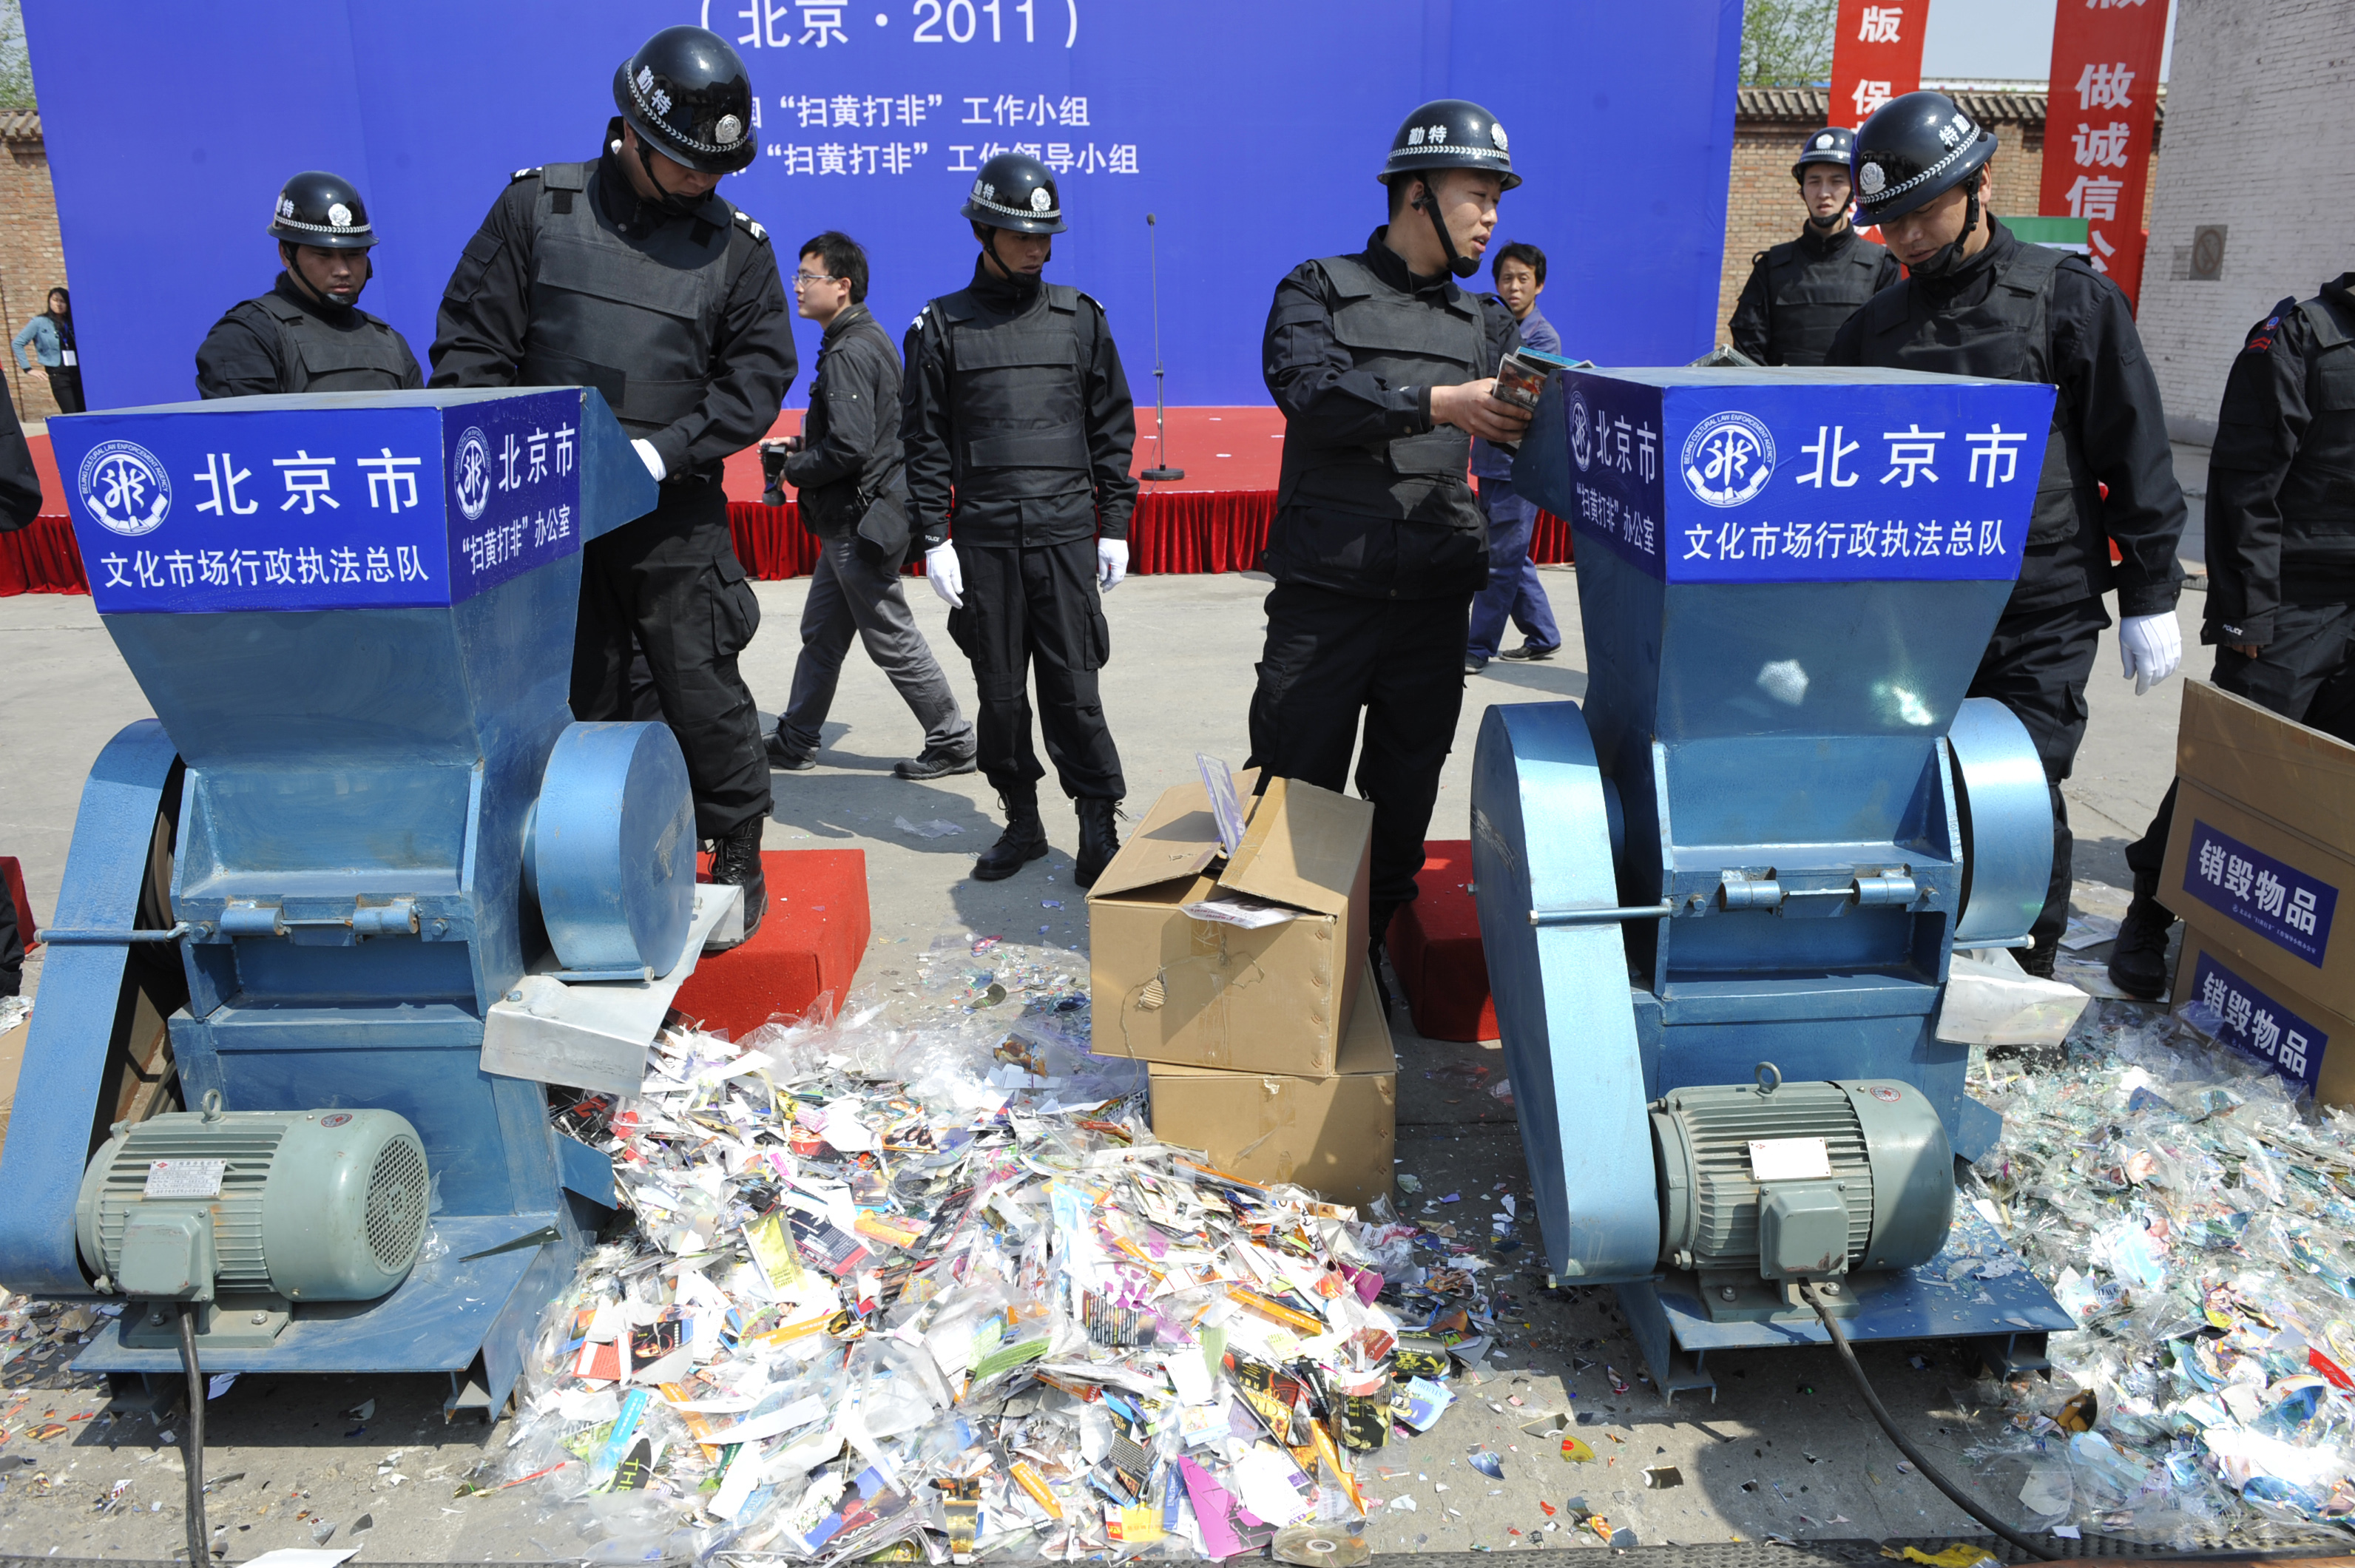 Chinese officials launch a ceremony to destroy thousands of pornographic books and video materials in Beijing on April 24, 2011.